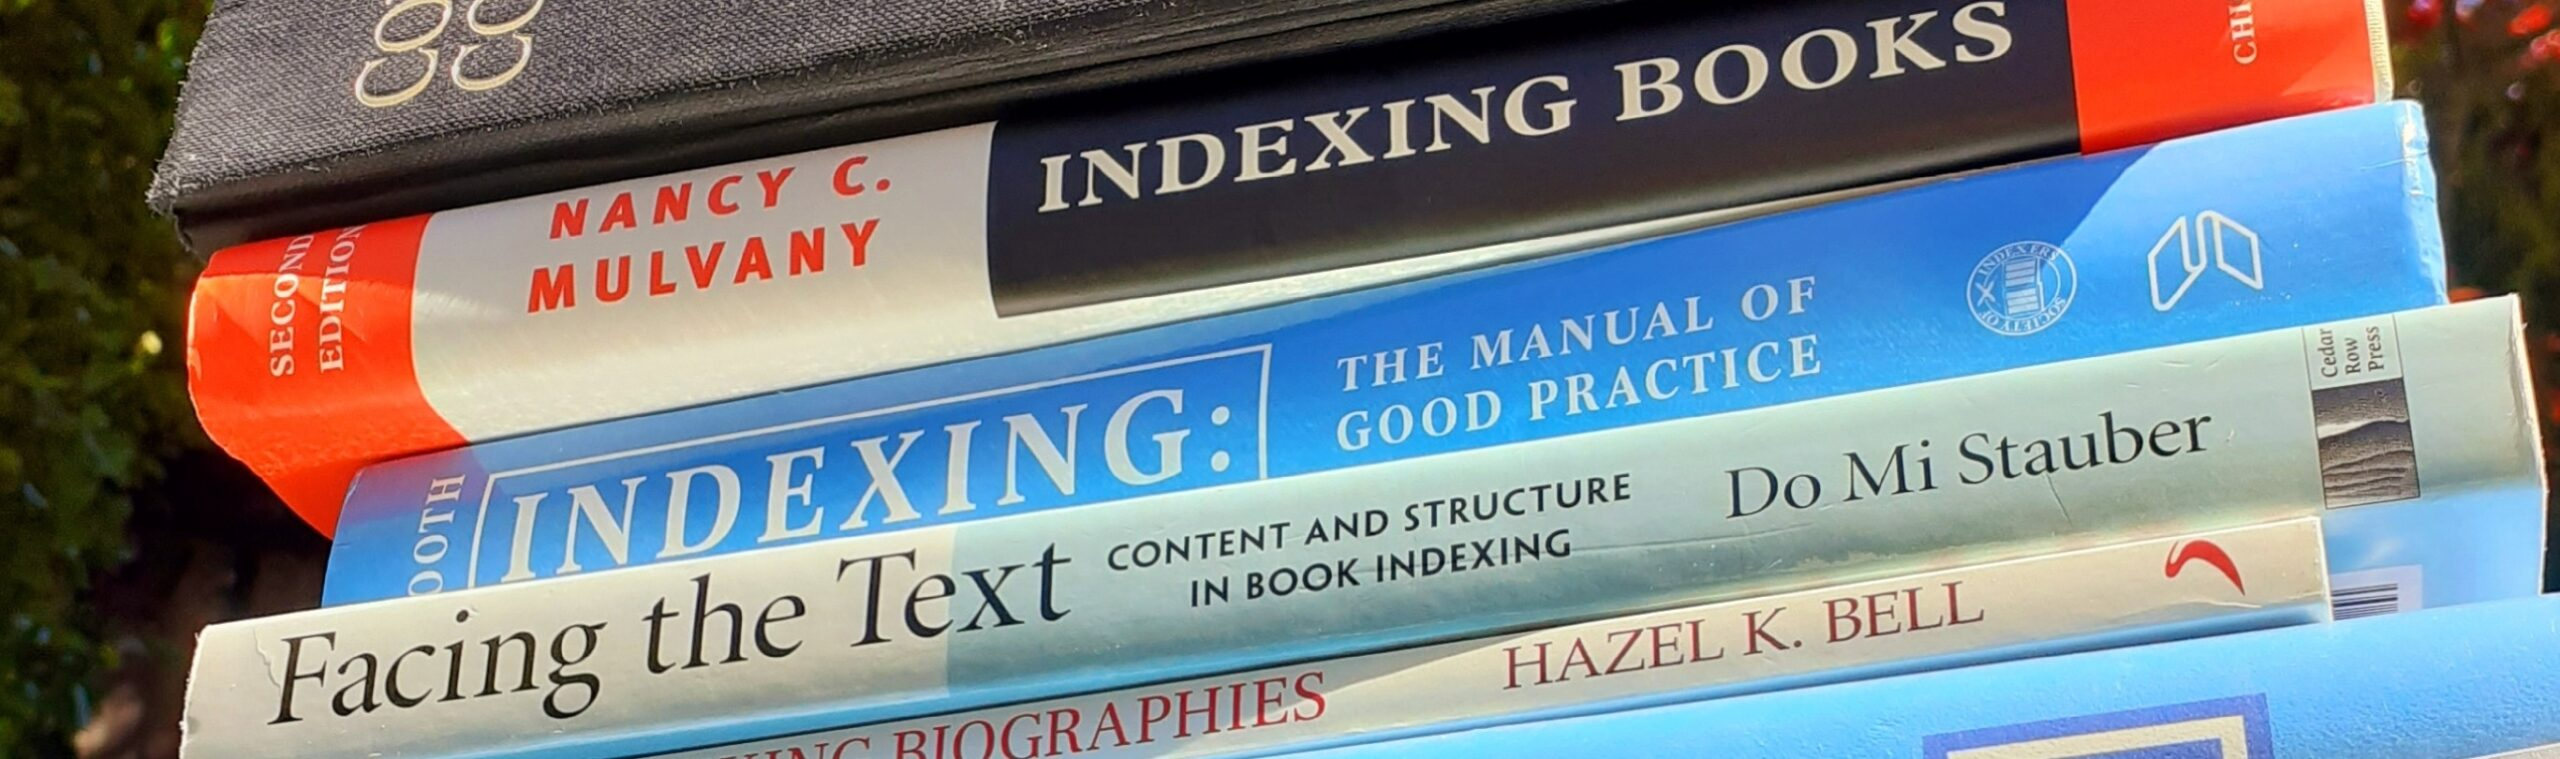 an indexer's reference books